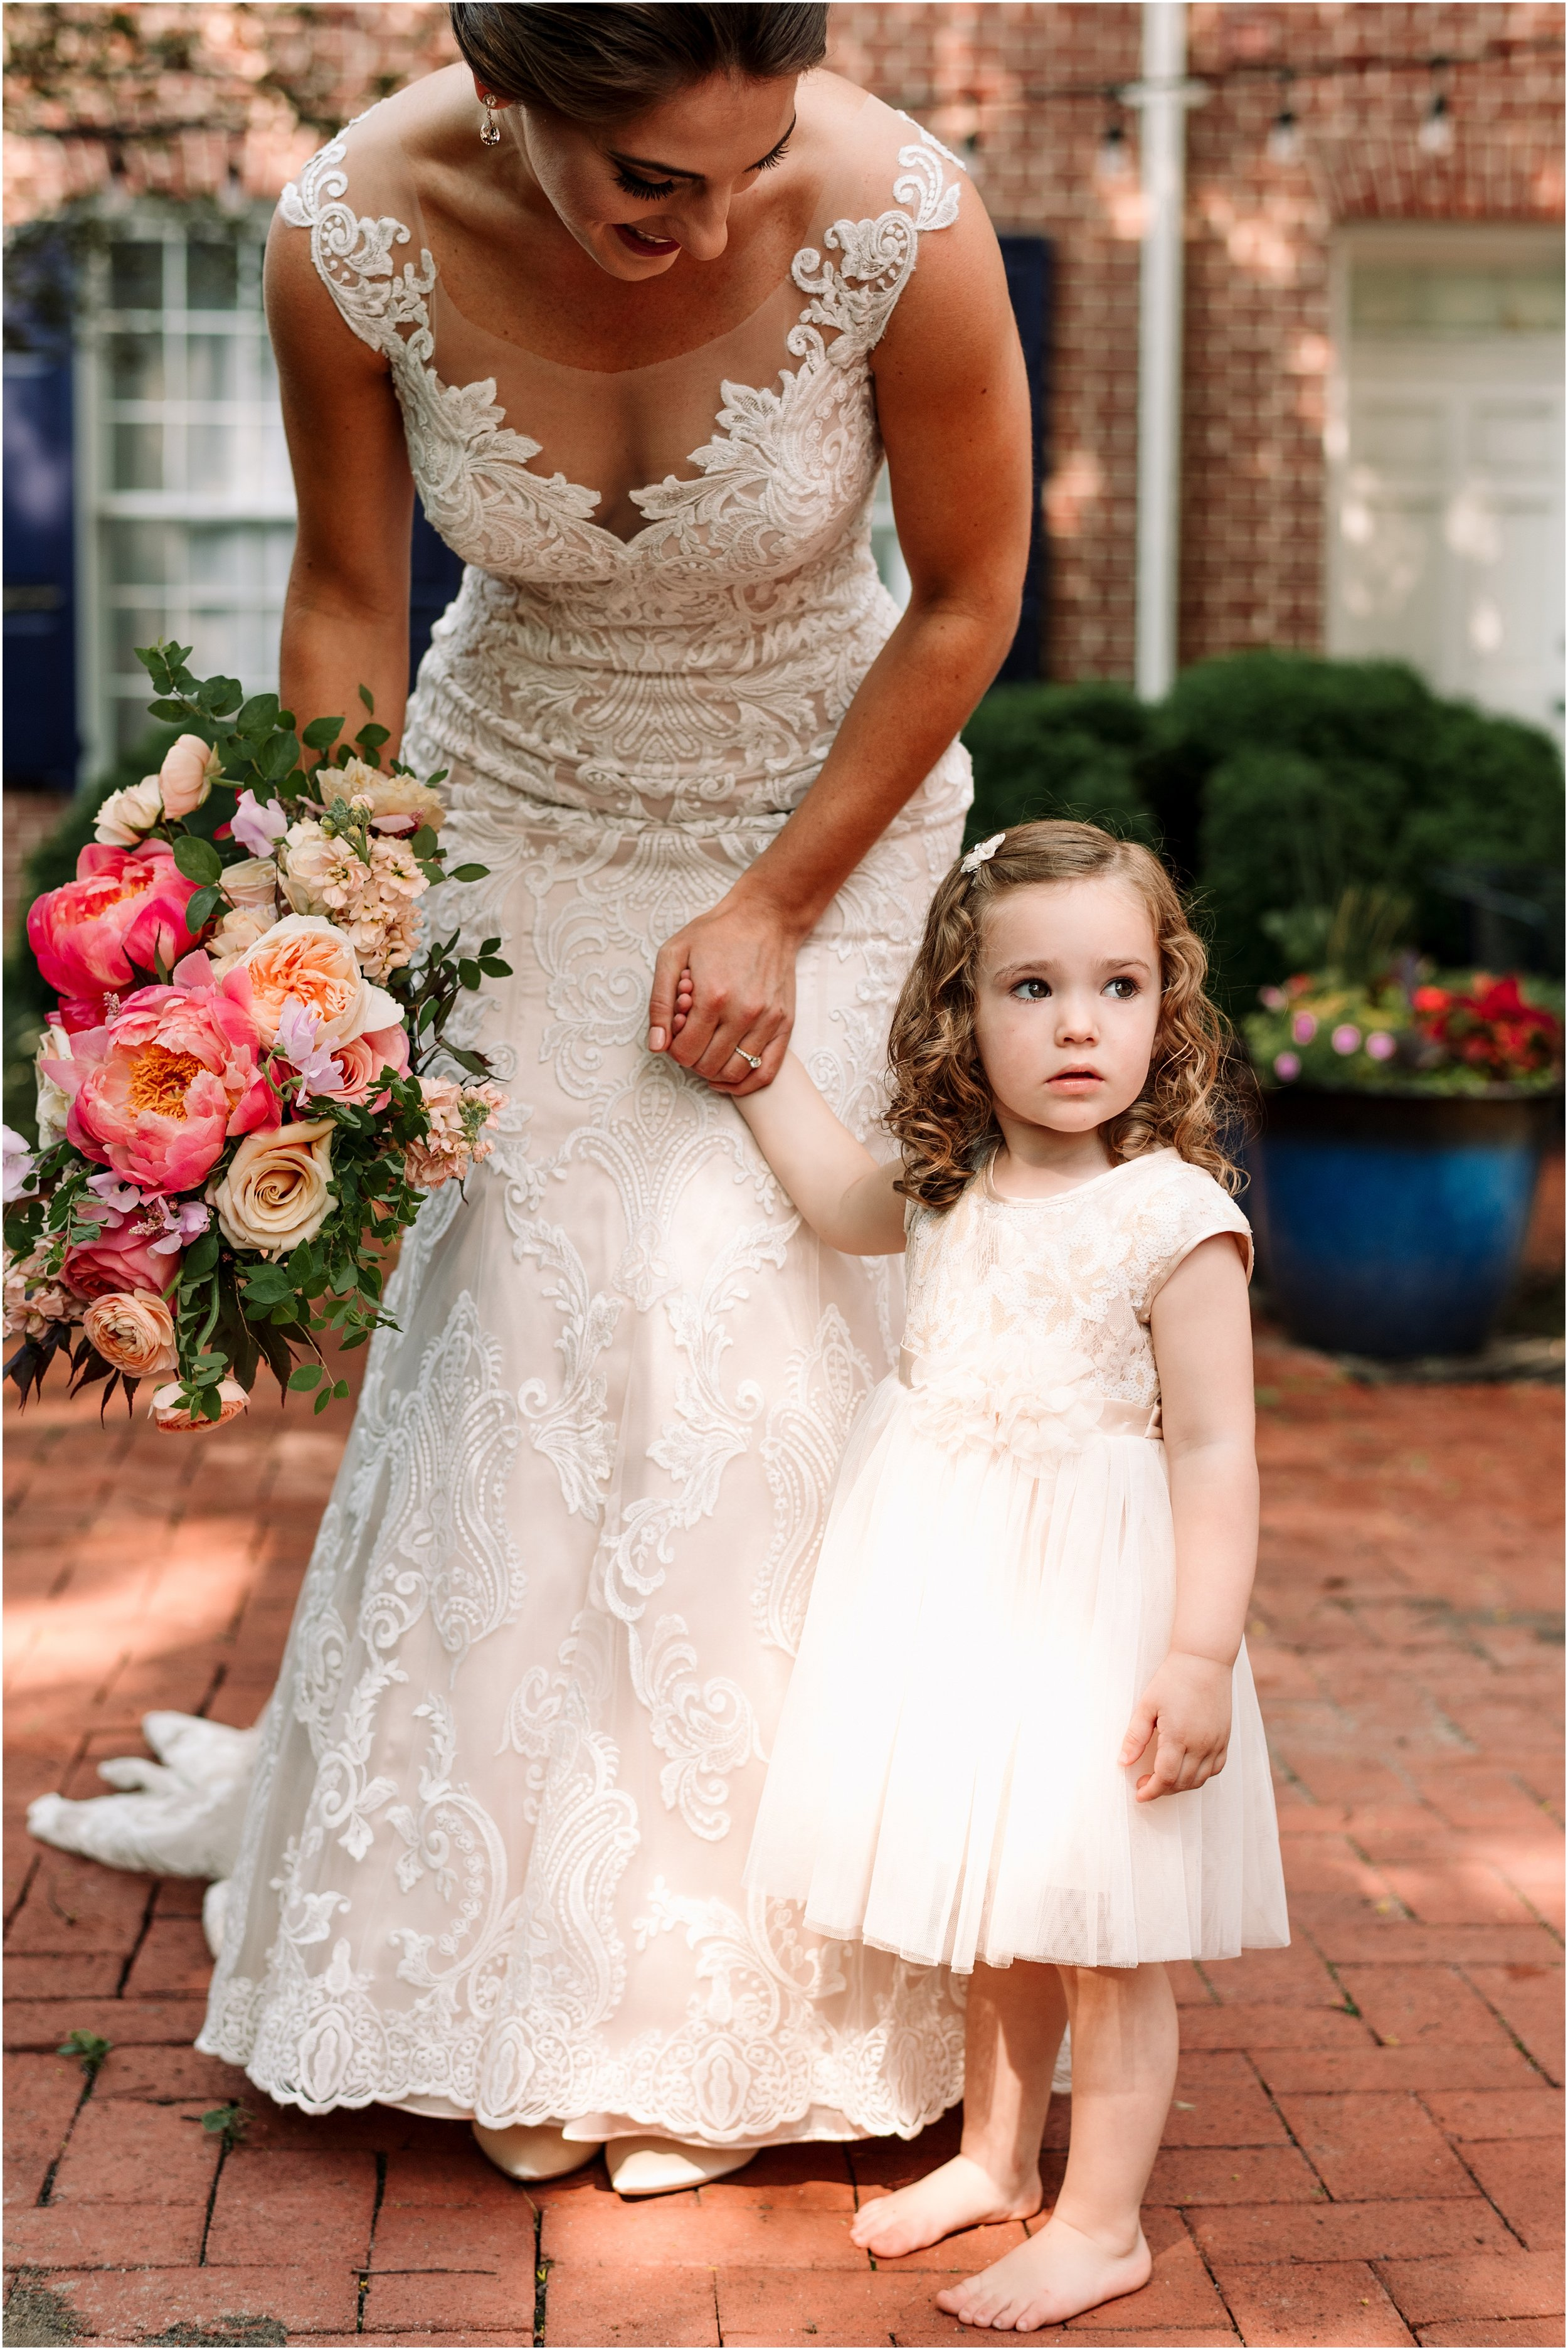 hannah leigh photography 1840s plaza wedding baltimore md_0144.jpg